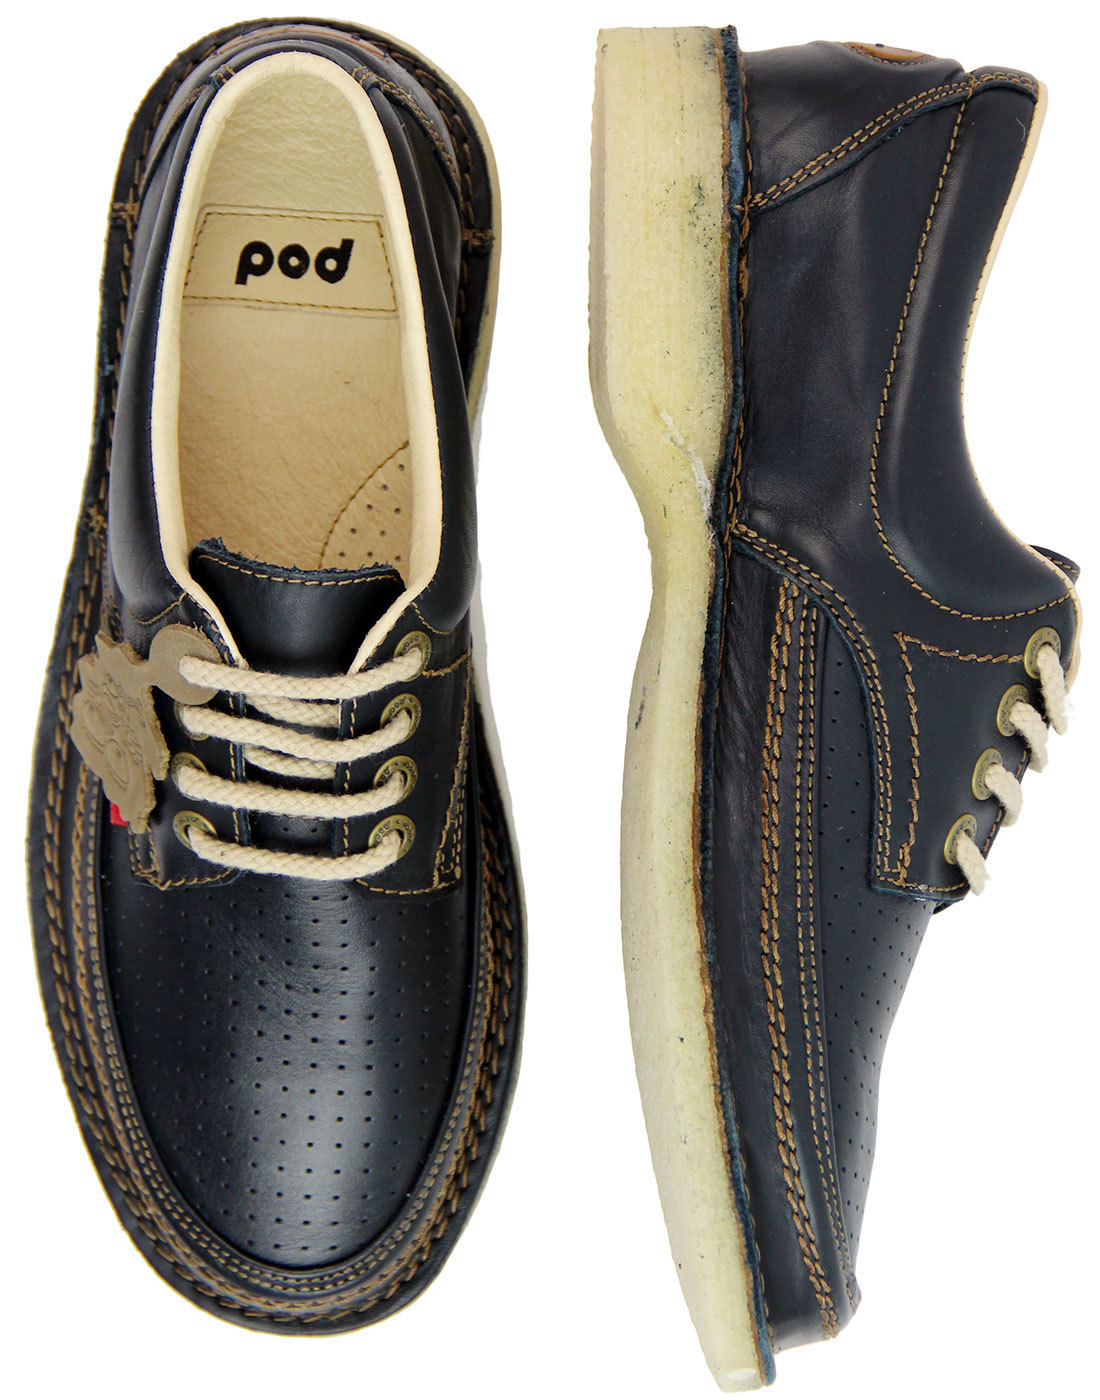 427d6c072 POD HERITAGE Gallagher Retro 70s Pin Punch Leather Casuals Shoes